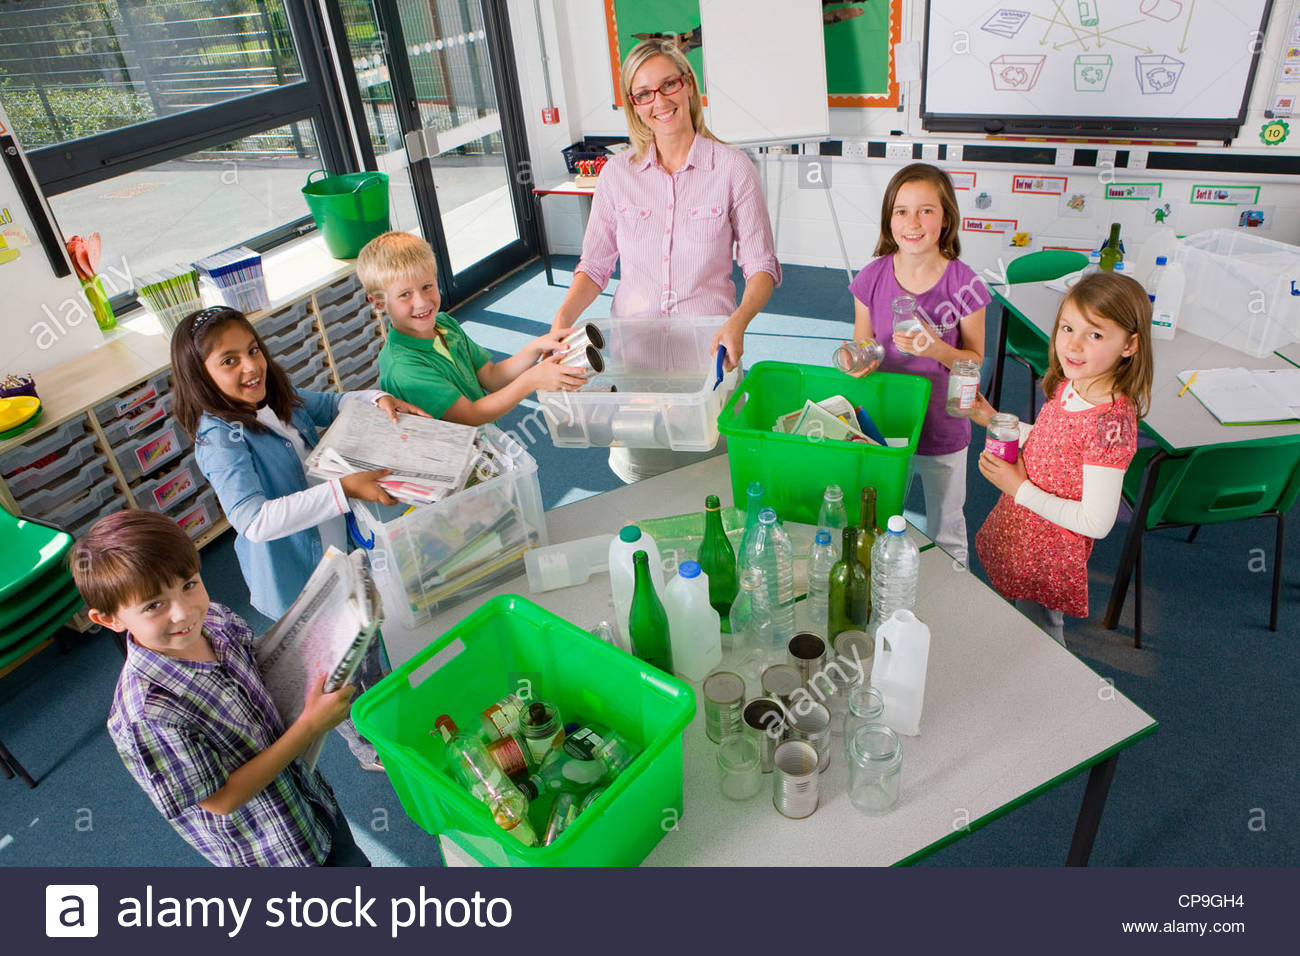 Teacher and students sorting recyclables in classroom - Stock Image